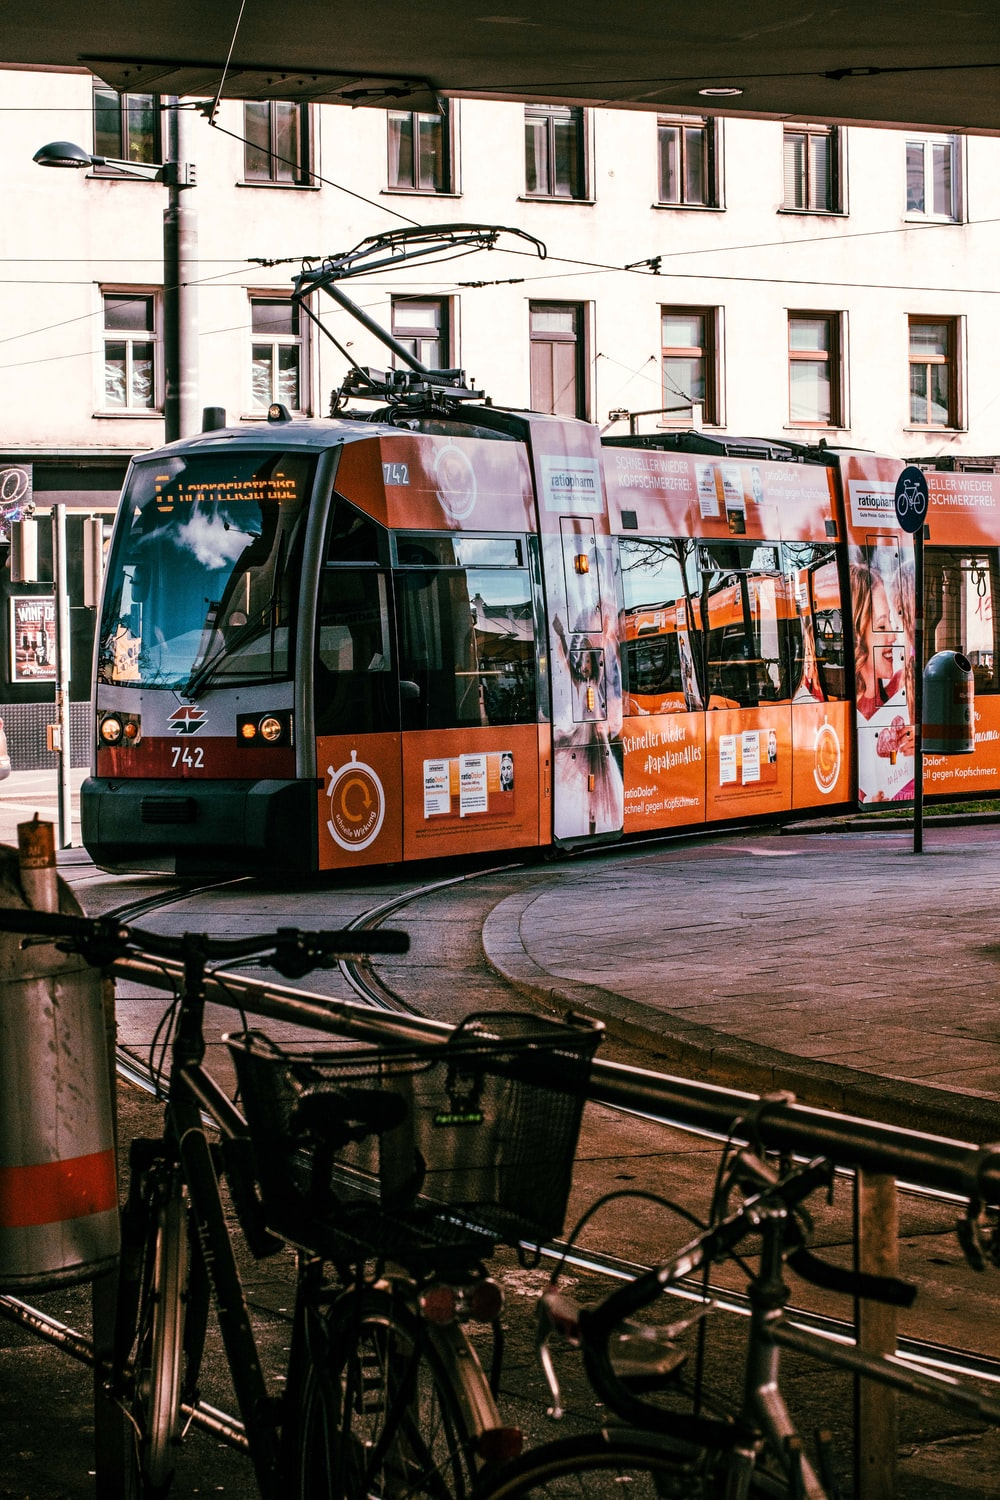 orange and white tram on road during daytime